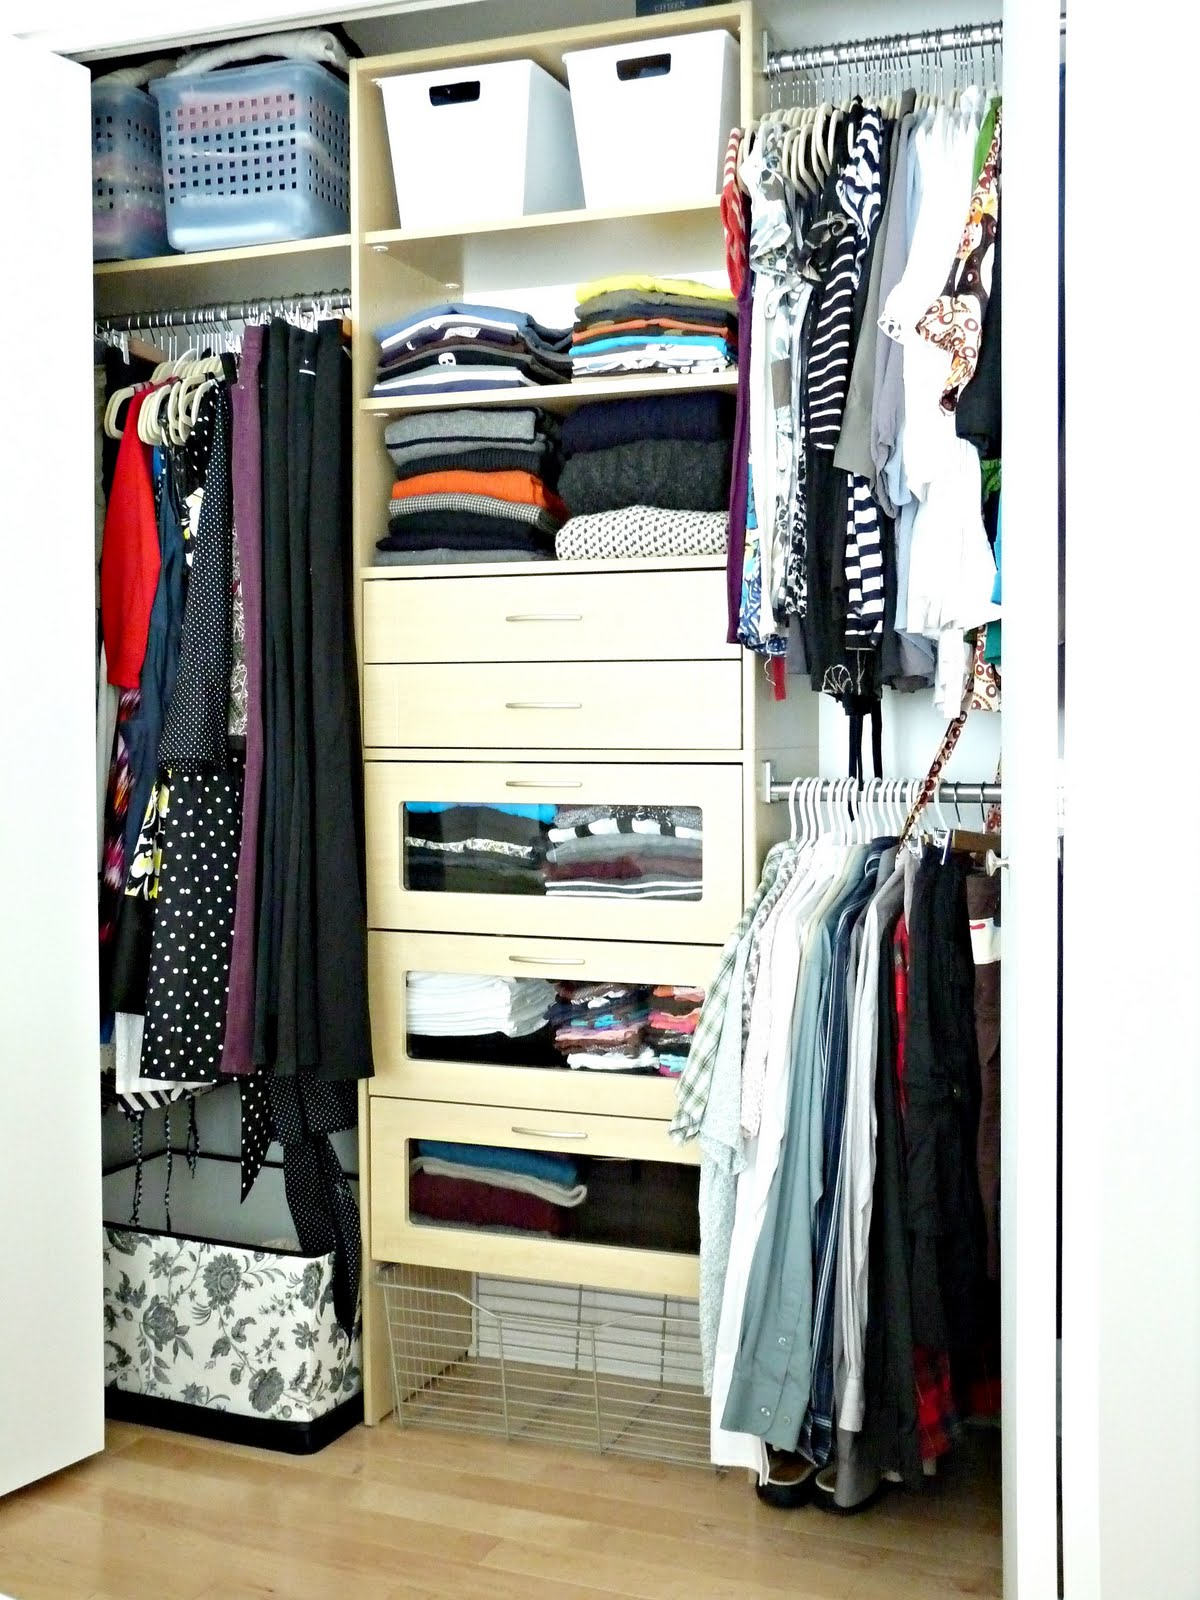 Closet overhaul life without a dresser dans le lakehouse How to organize your clothes without a closet